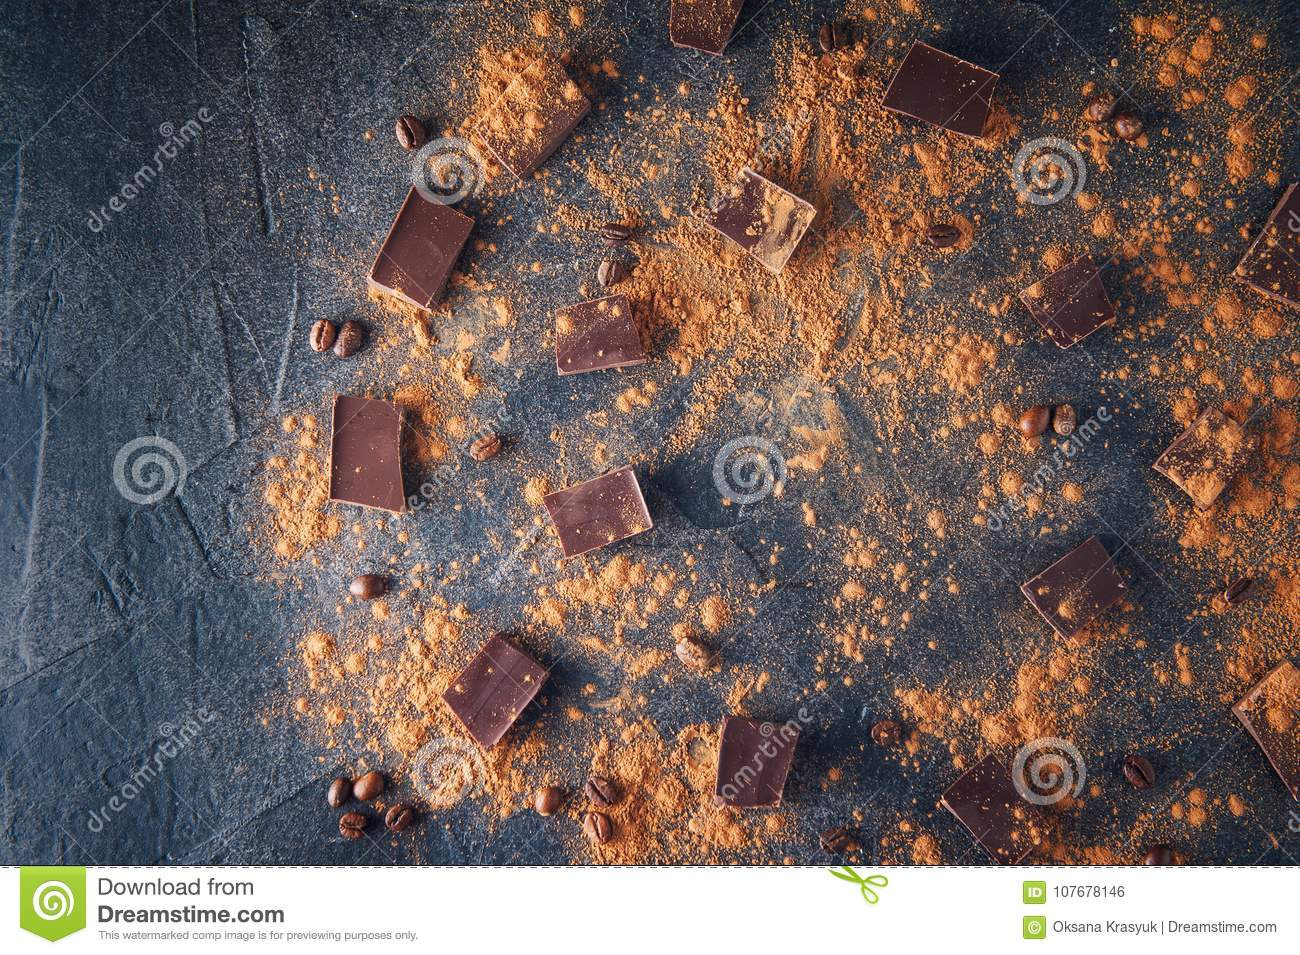 Chocolate bar pieces, cocoa powder and coffee beans on dark stone background. Background with chocolate. Slices of chocolate. Swee